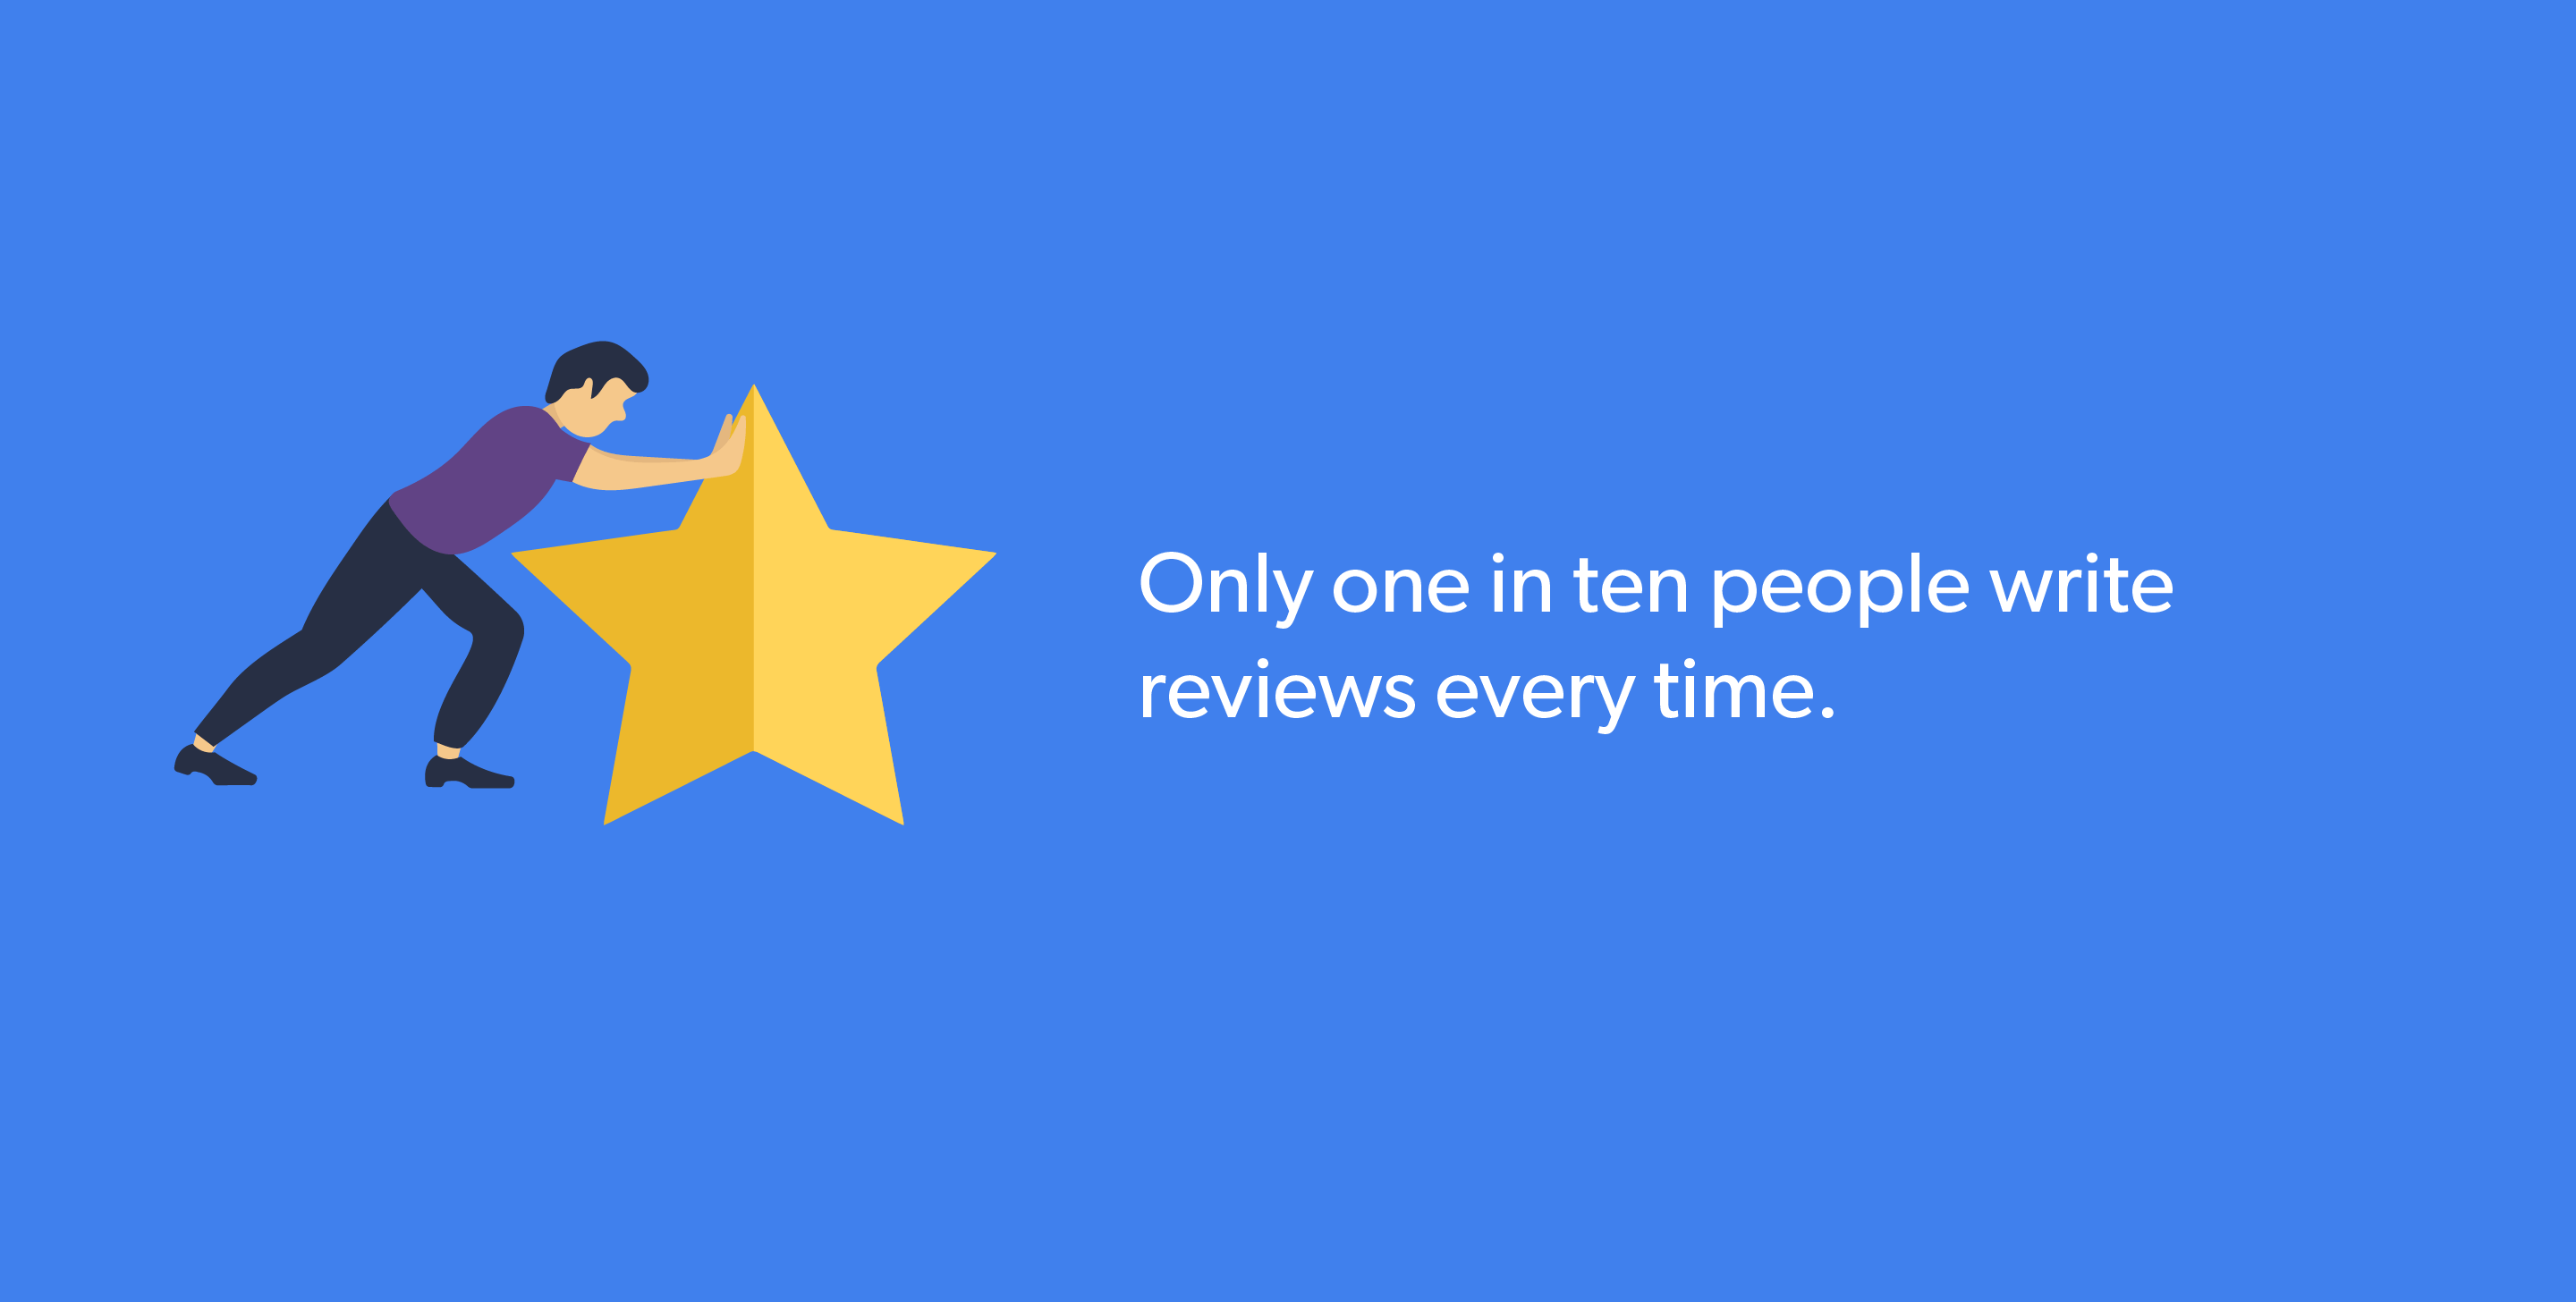 Only one in ten people write reviews every time.